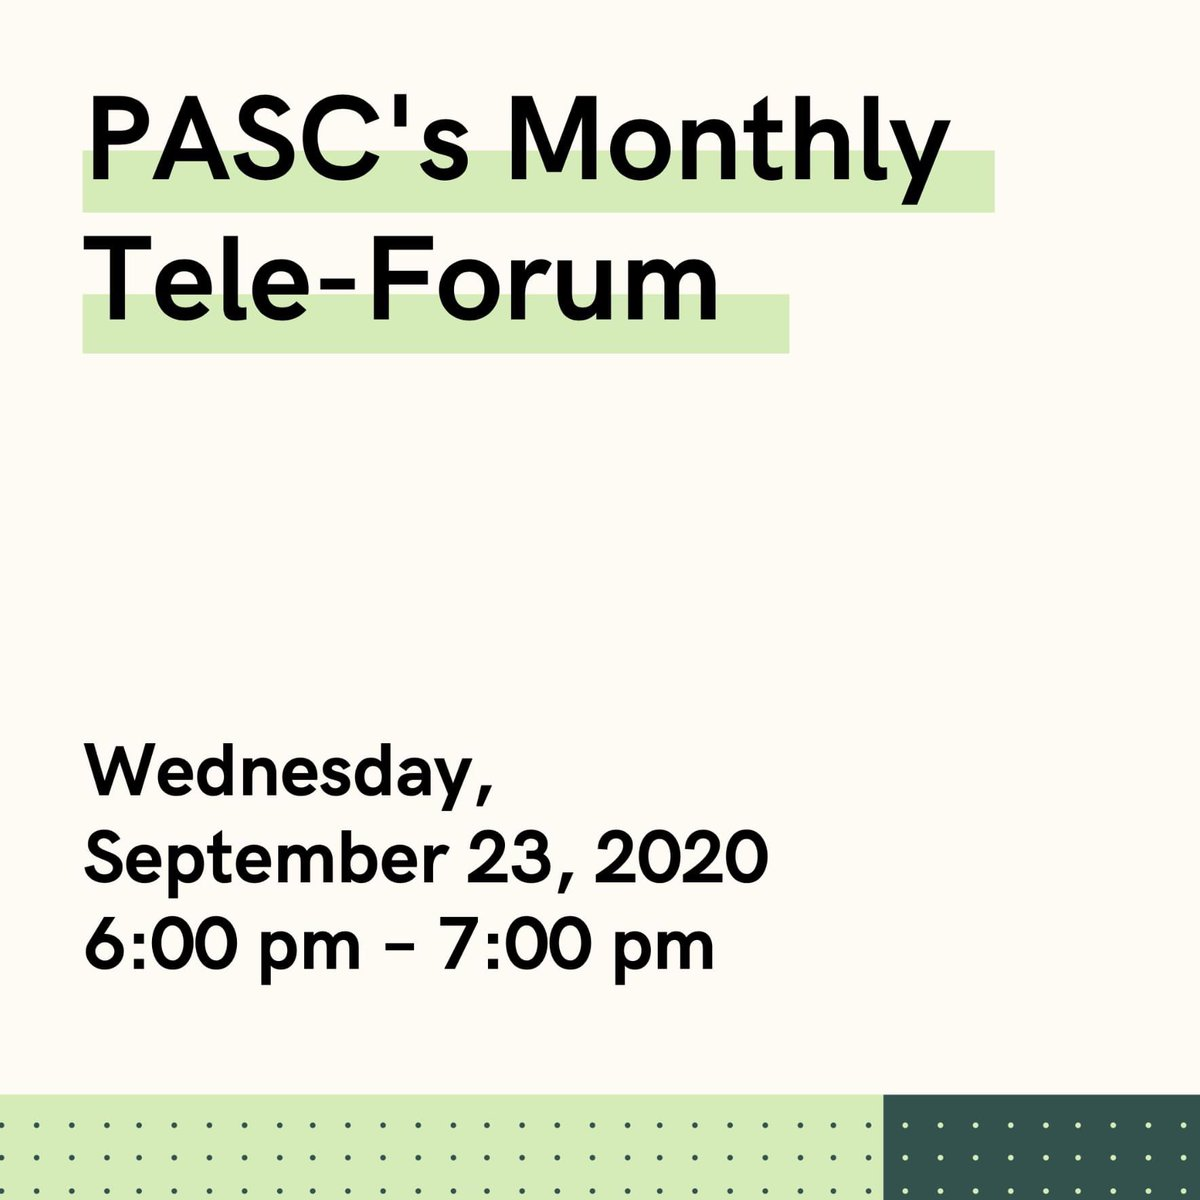 Join us for a discussion with Dr Jeffrey Gunzenhouser from the LA County Department of Public Health for a COVID-19 update.  Join by: Dial 877-229-8493  use i.d. code 111563 https://t.co/Nqr5eQCJrI  #pasc #pascla #ihss #consumers #providers #losangeles #LACounty https://t.co/Us3RTicP7f